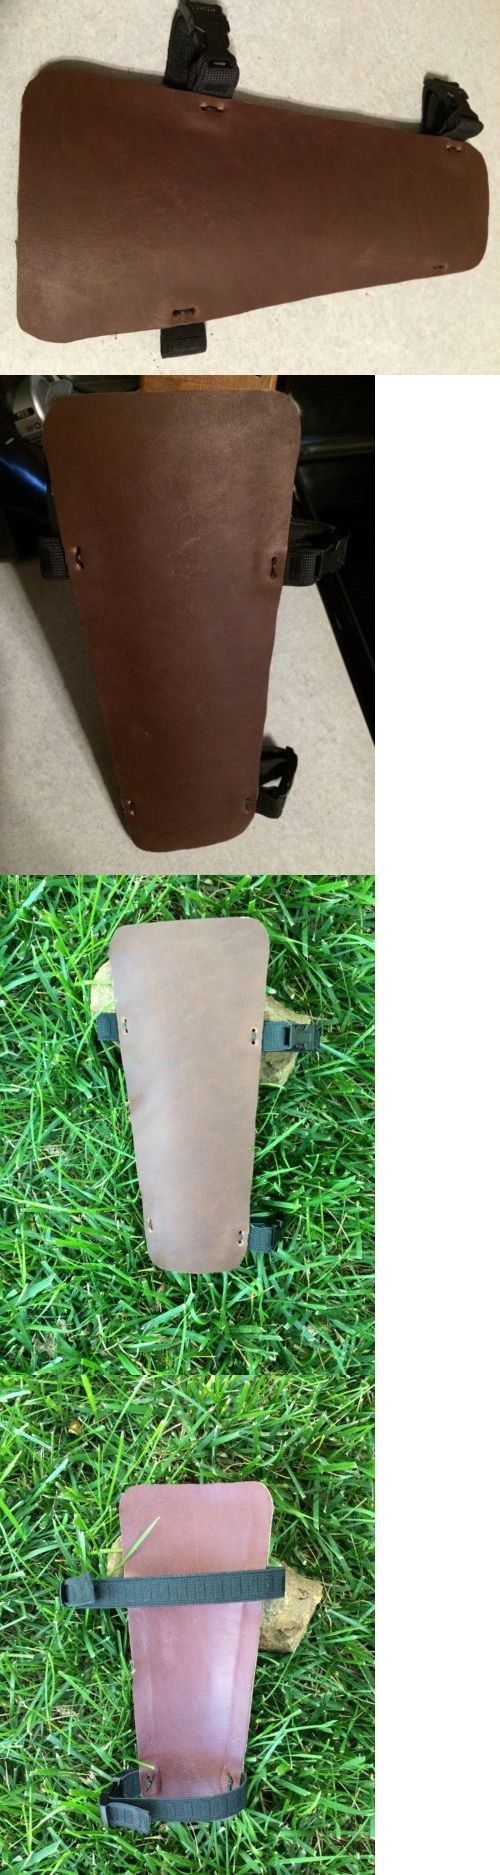 Arm Guards and Chest Guards 181298: Usa Men S Women S Handmade Custom Leather Traditional Compound Archery Arm Guard -> BUY IT NOW ONLY: $30 on eBay!